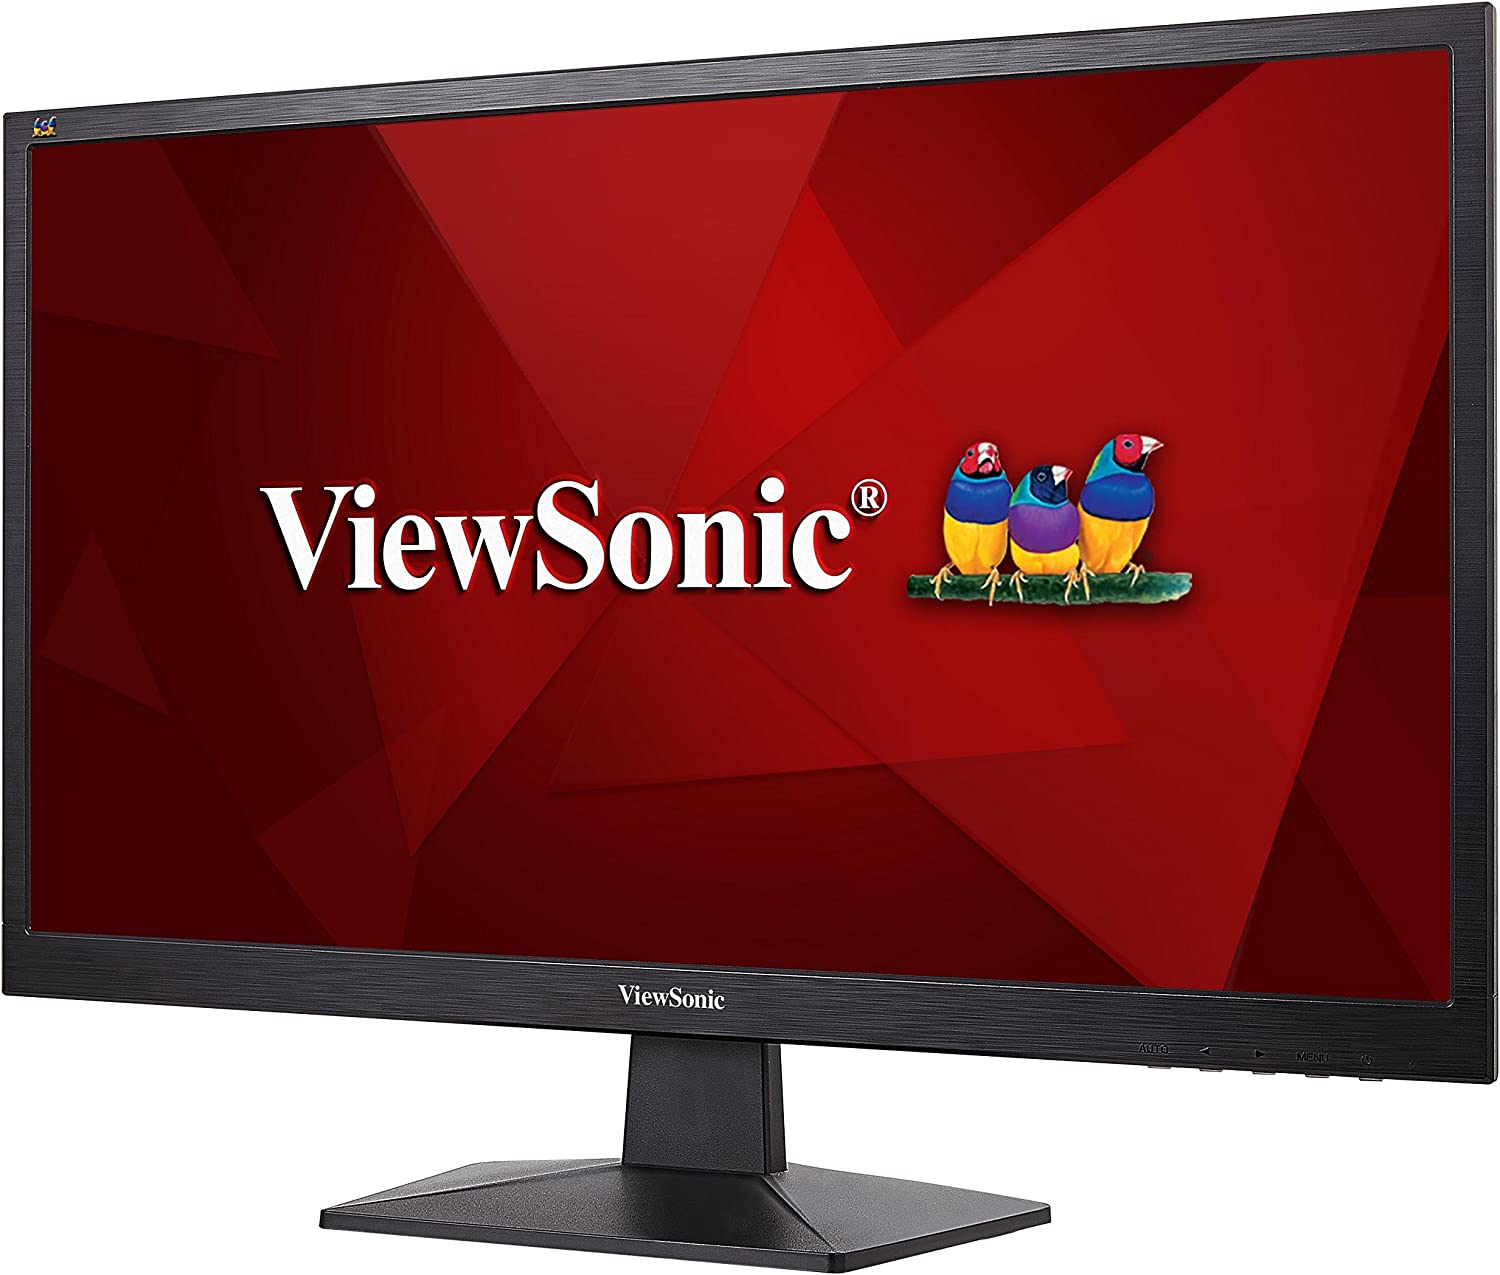 Schwarz Full-HD, HDMI, VGA, Eye-Care, Eco-Mode 24 Zoll Viewsonic VA2405-H 59,9 cm Monitor